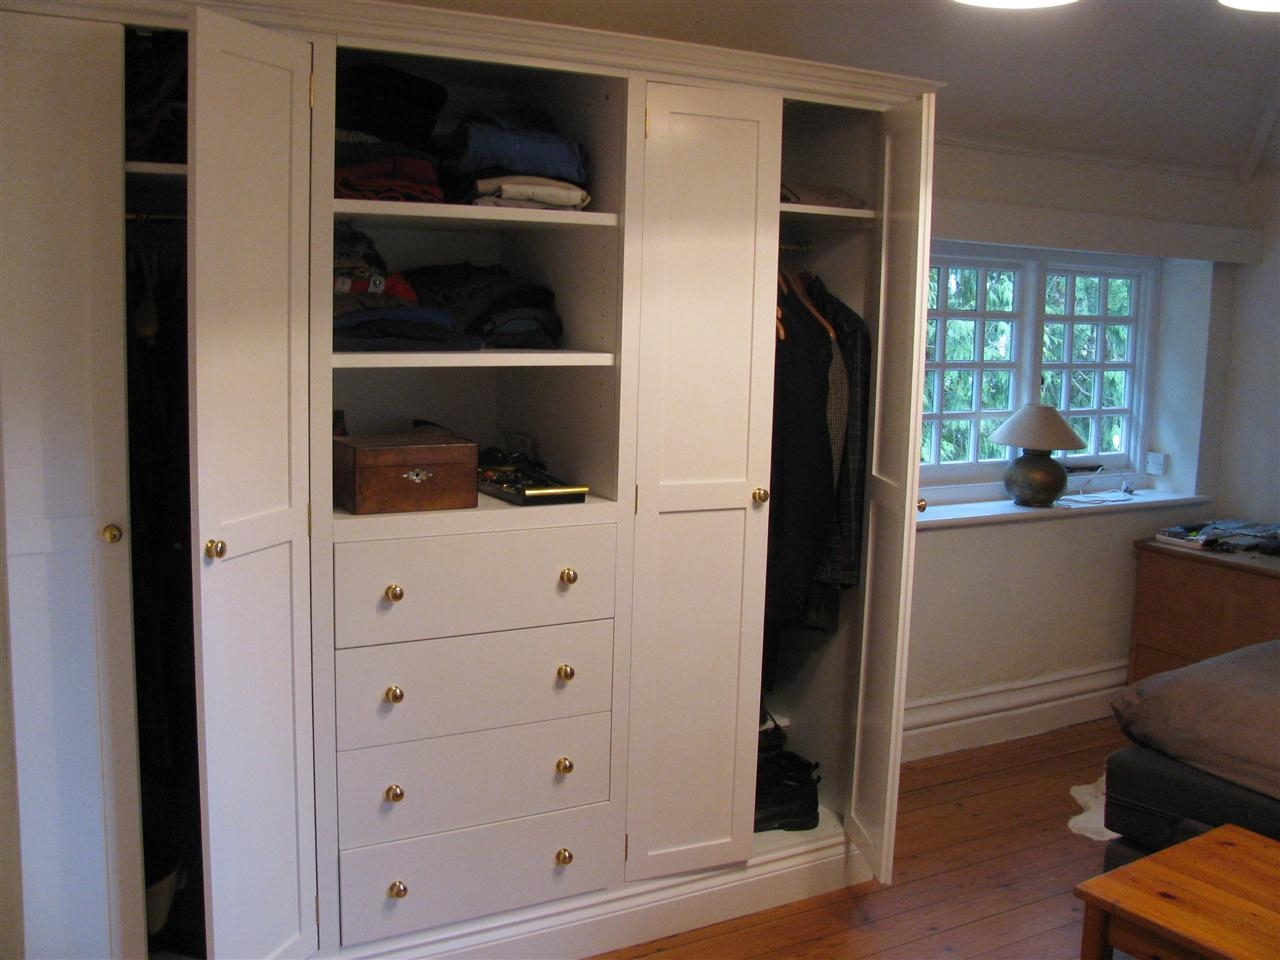 Wardrobes Regarding Wardrobe With Shelves And Drawers (View 11 of 15)